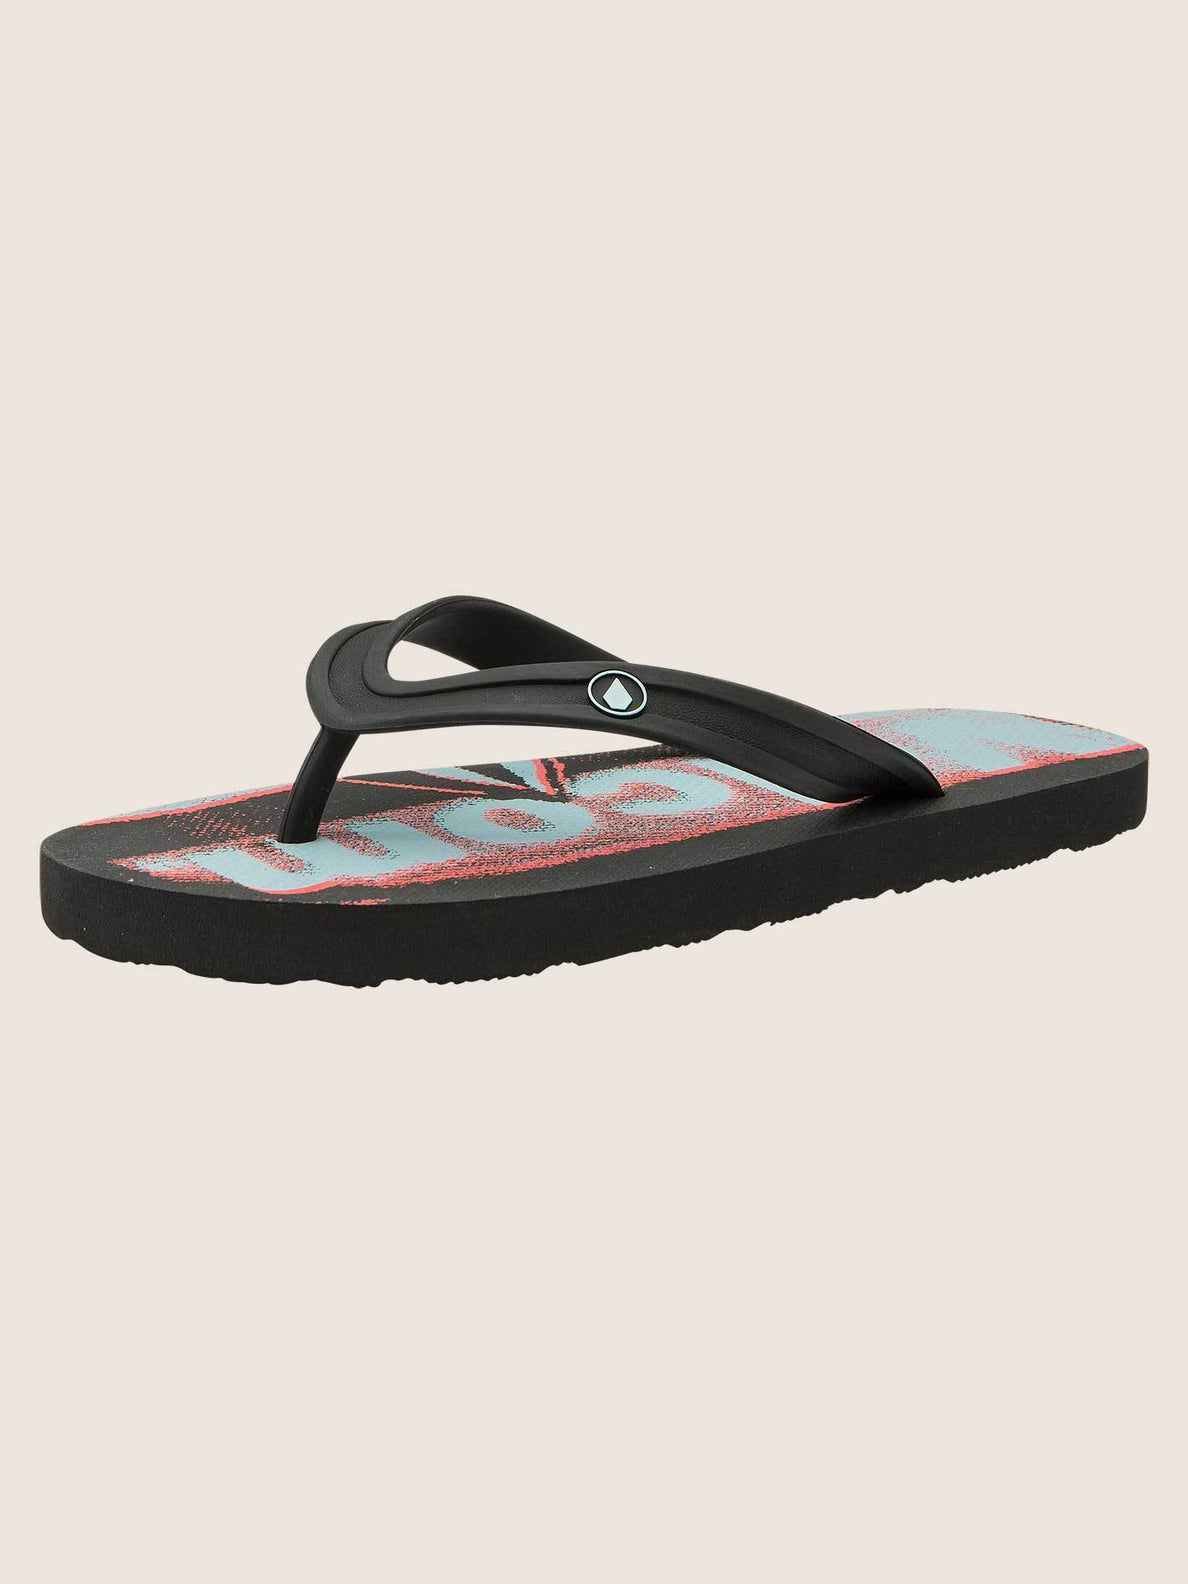 Rocker 2 Sandals Big Youth - Electric Coral (X0811800_ELC) [B]